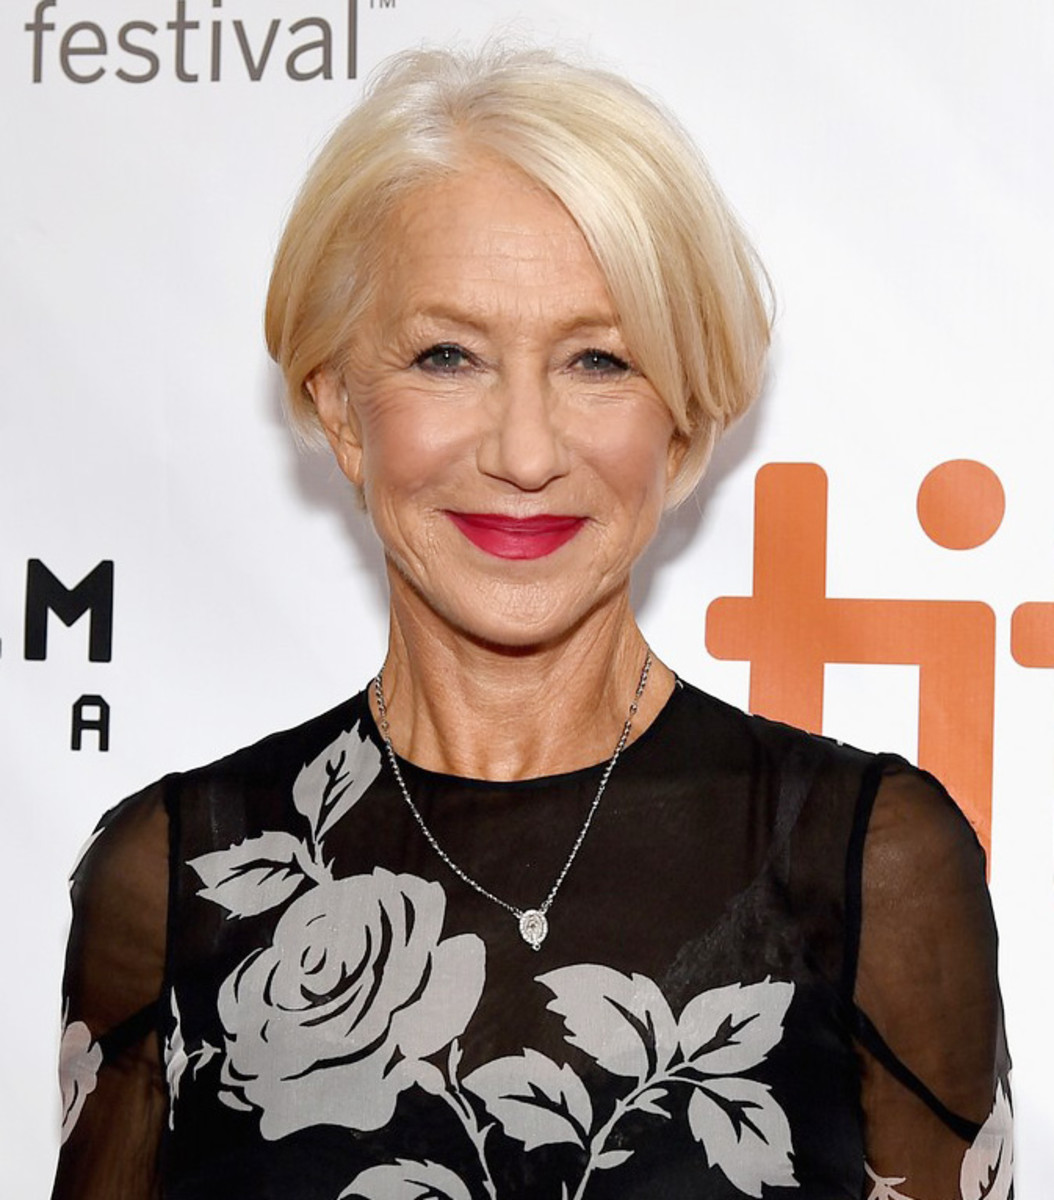 Dame Helen Mirren is radiant at the TIFF 2015 premiere of Eye in the Sky